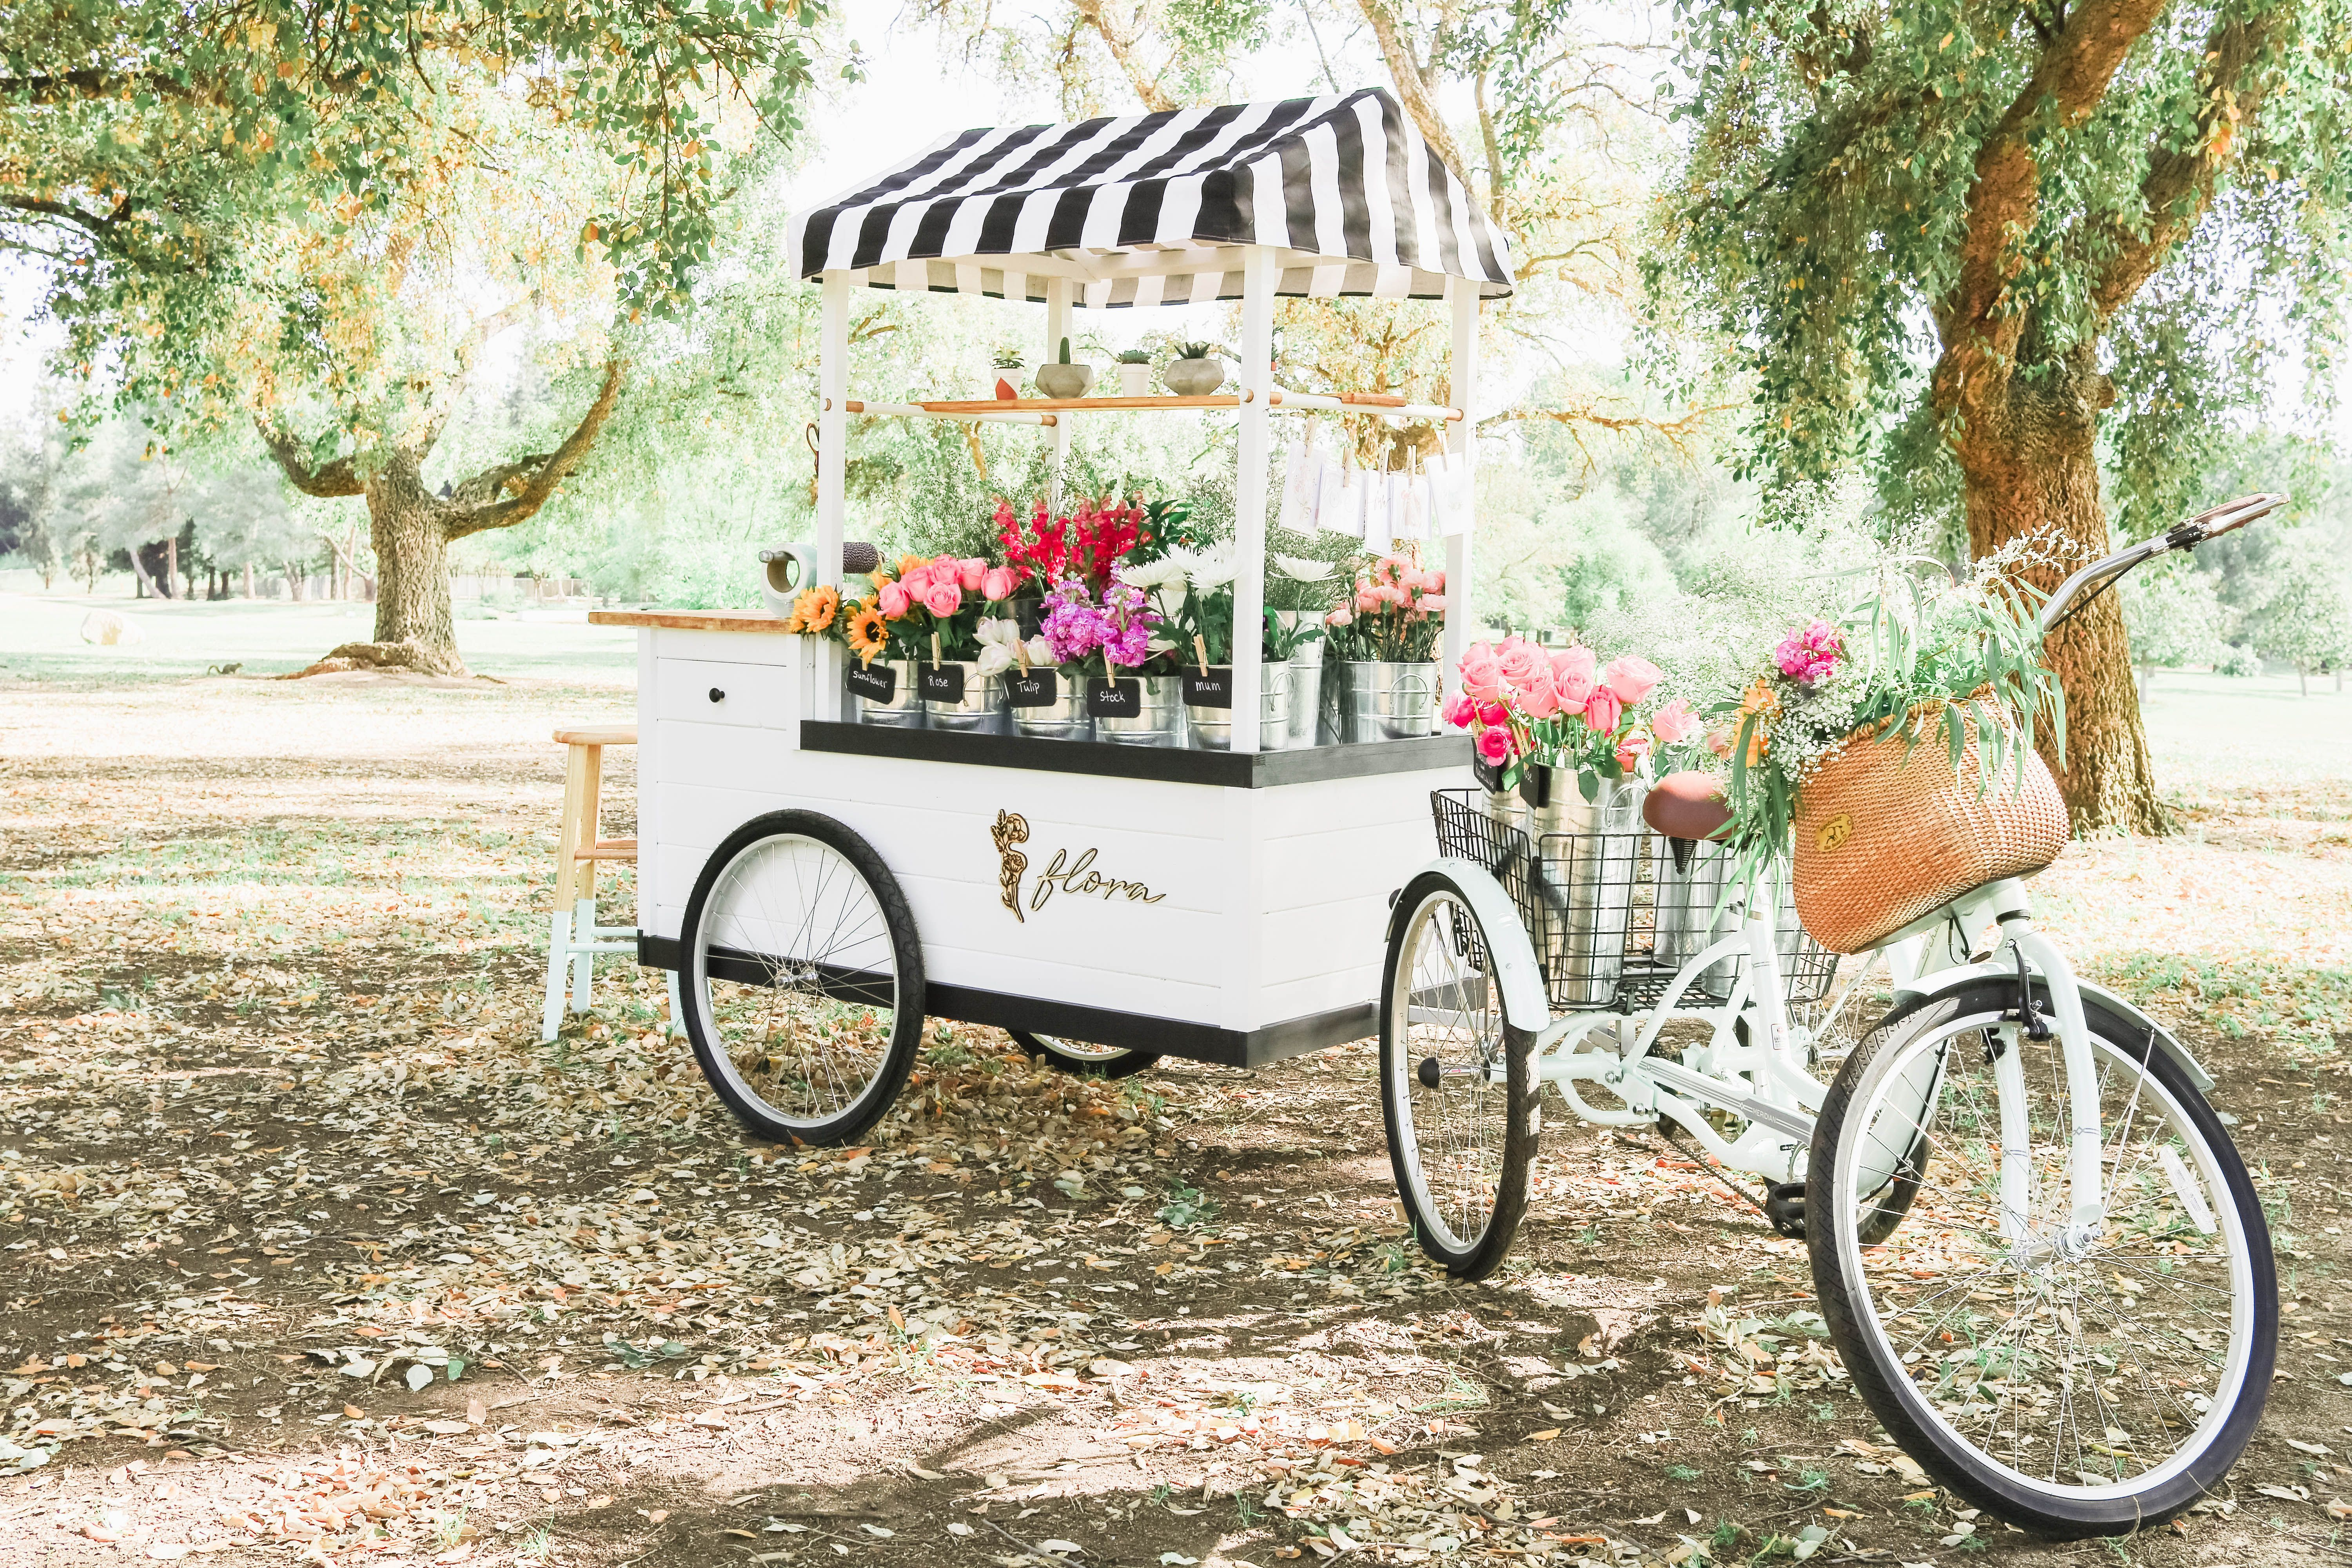 Awesome Flora Flower Cart And Review in 2020 Flower cart